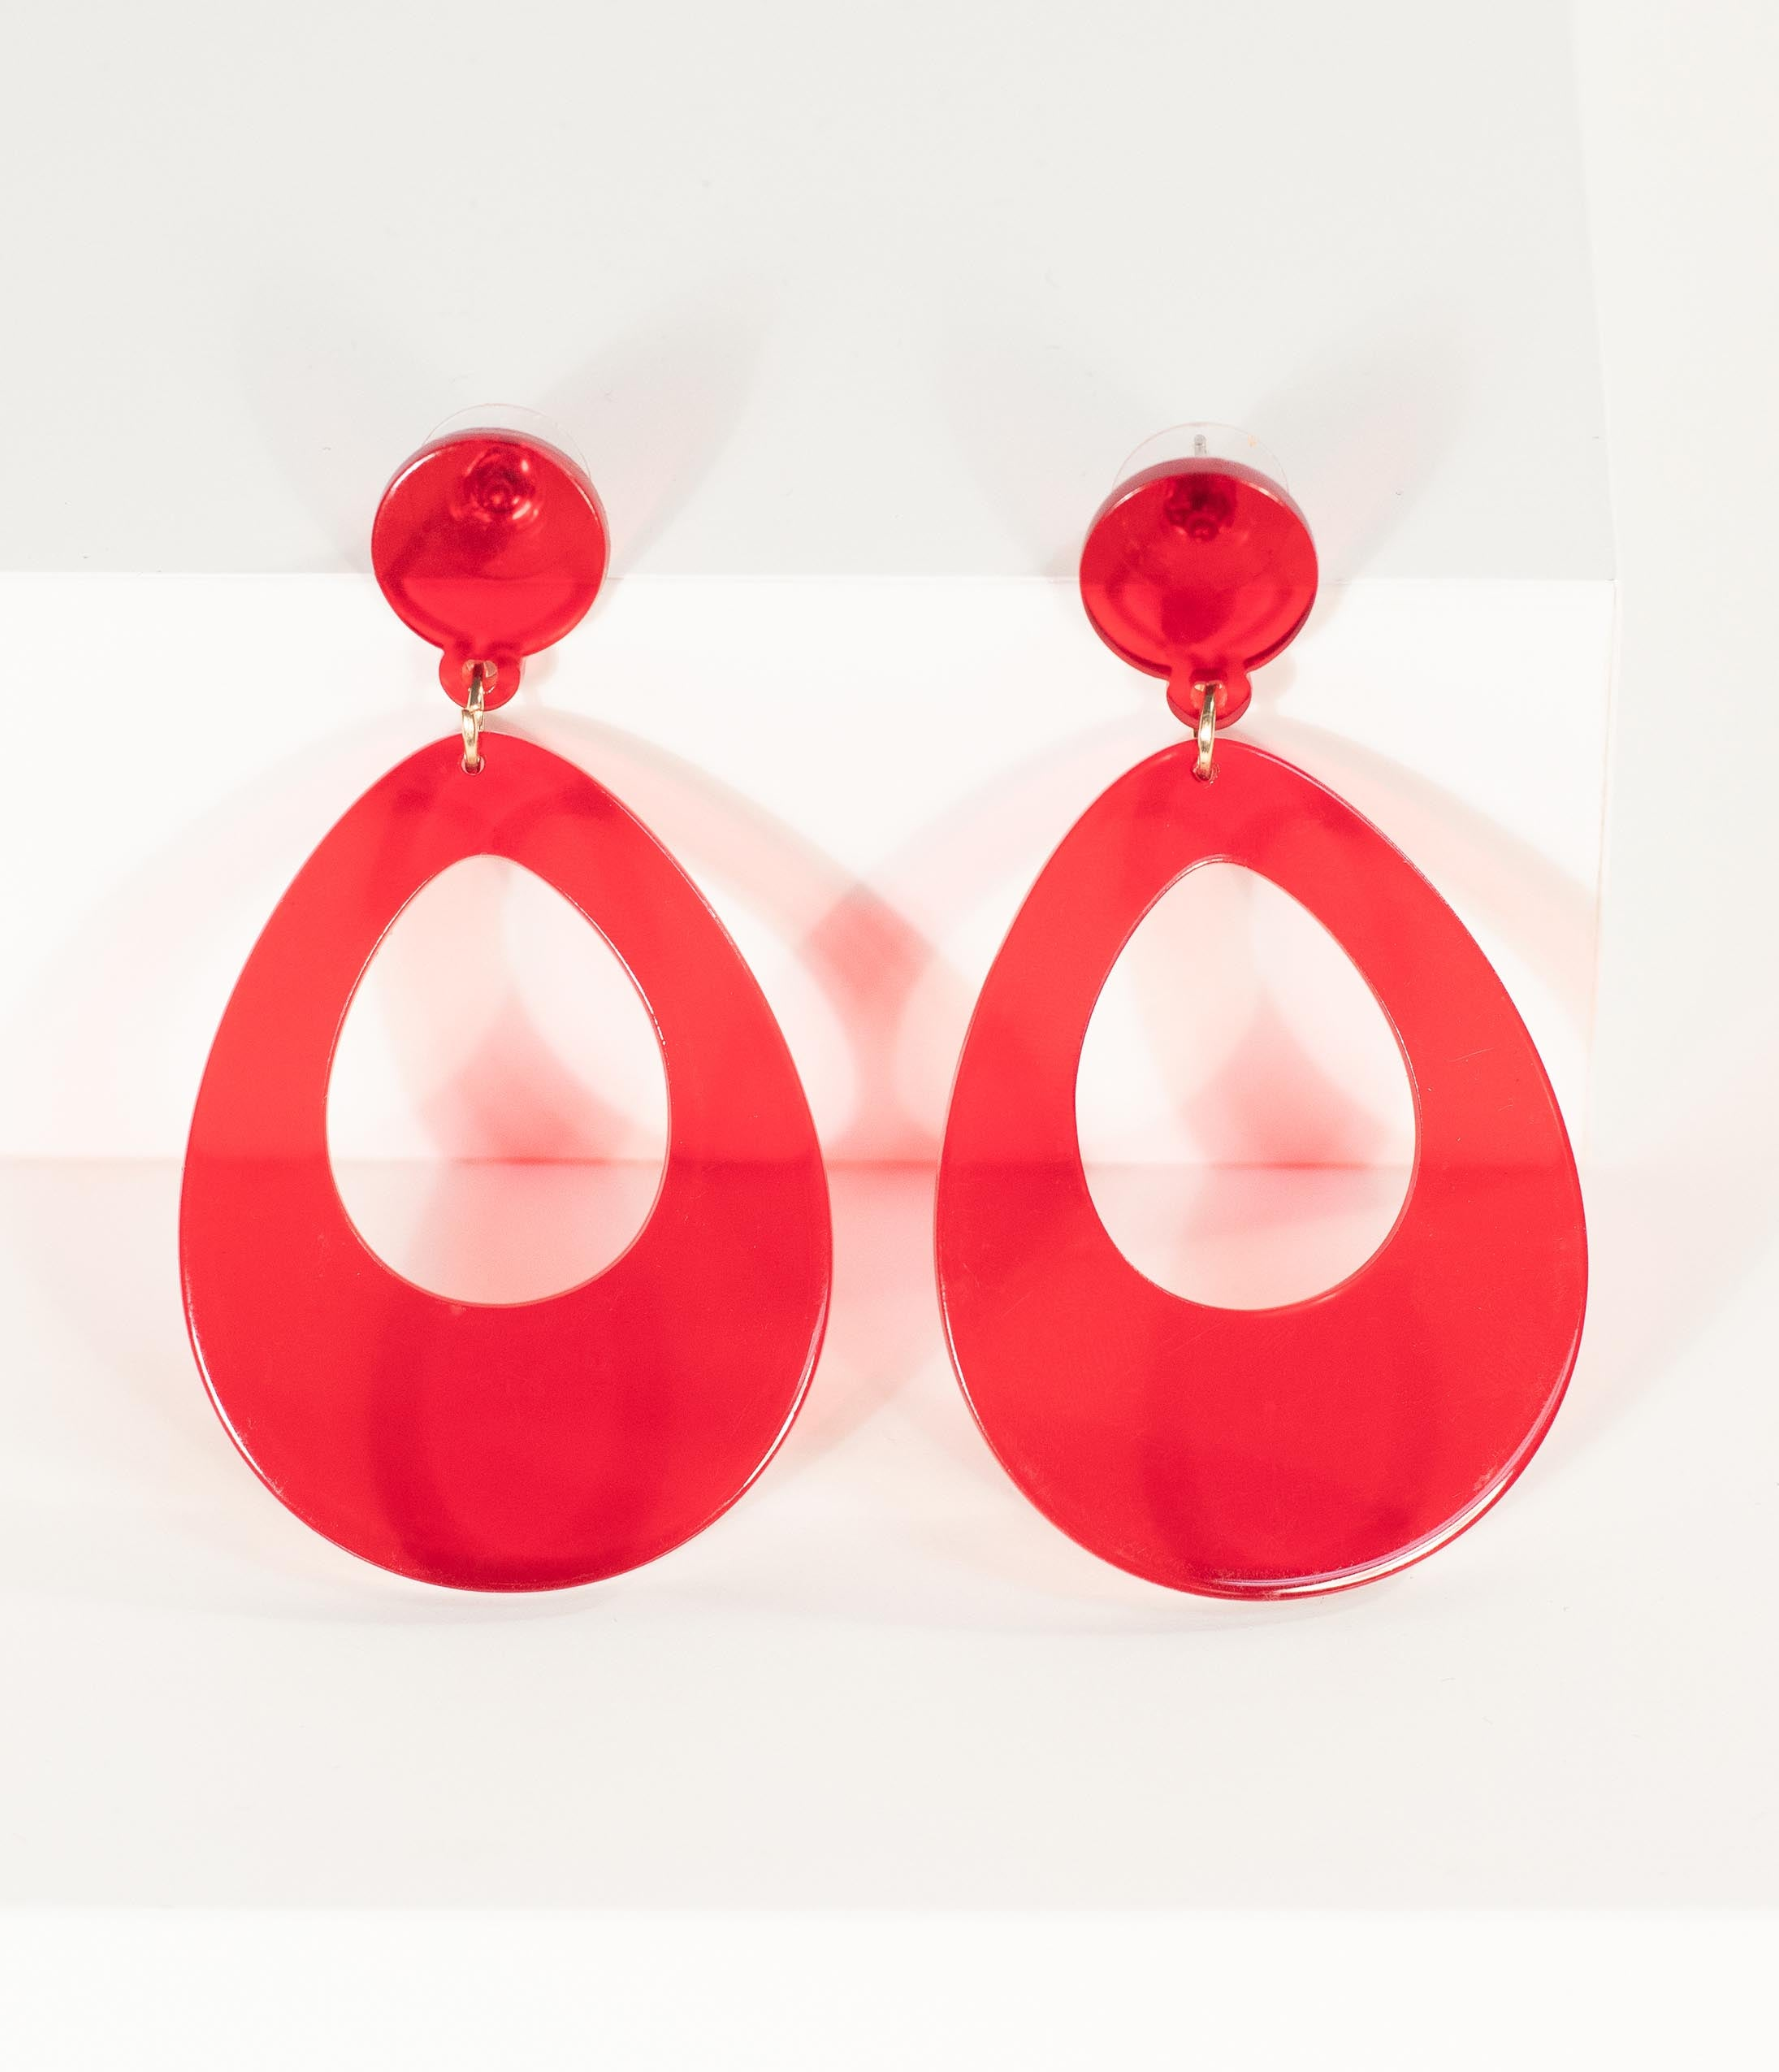 da9fbc750 60s -70s Jewelry – Necklaces, Earrings, Rings, Bracelets Red Teardrop Clear  Resin